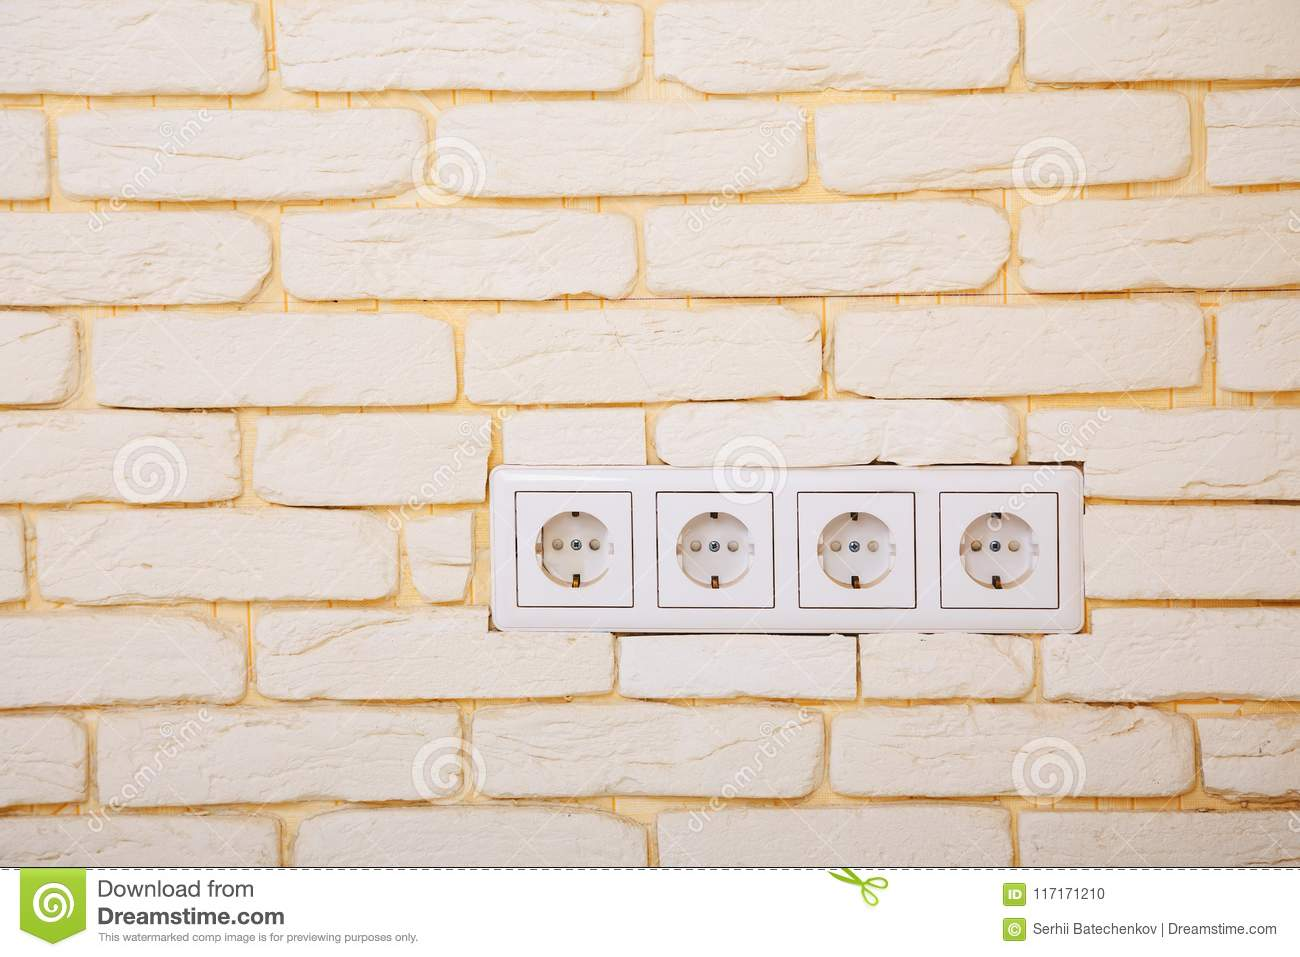 Electrical Outlets Or Network Sockets In The Brick Wall Stock Photo ...